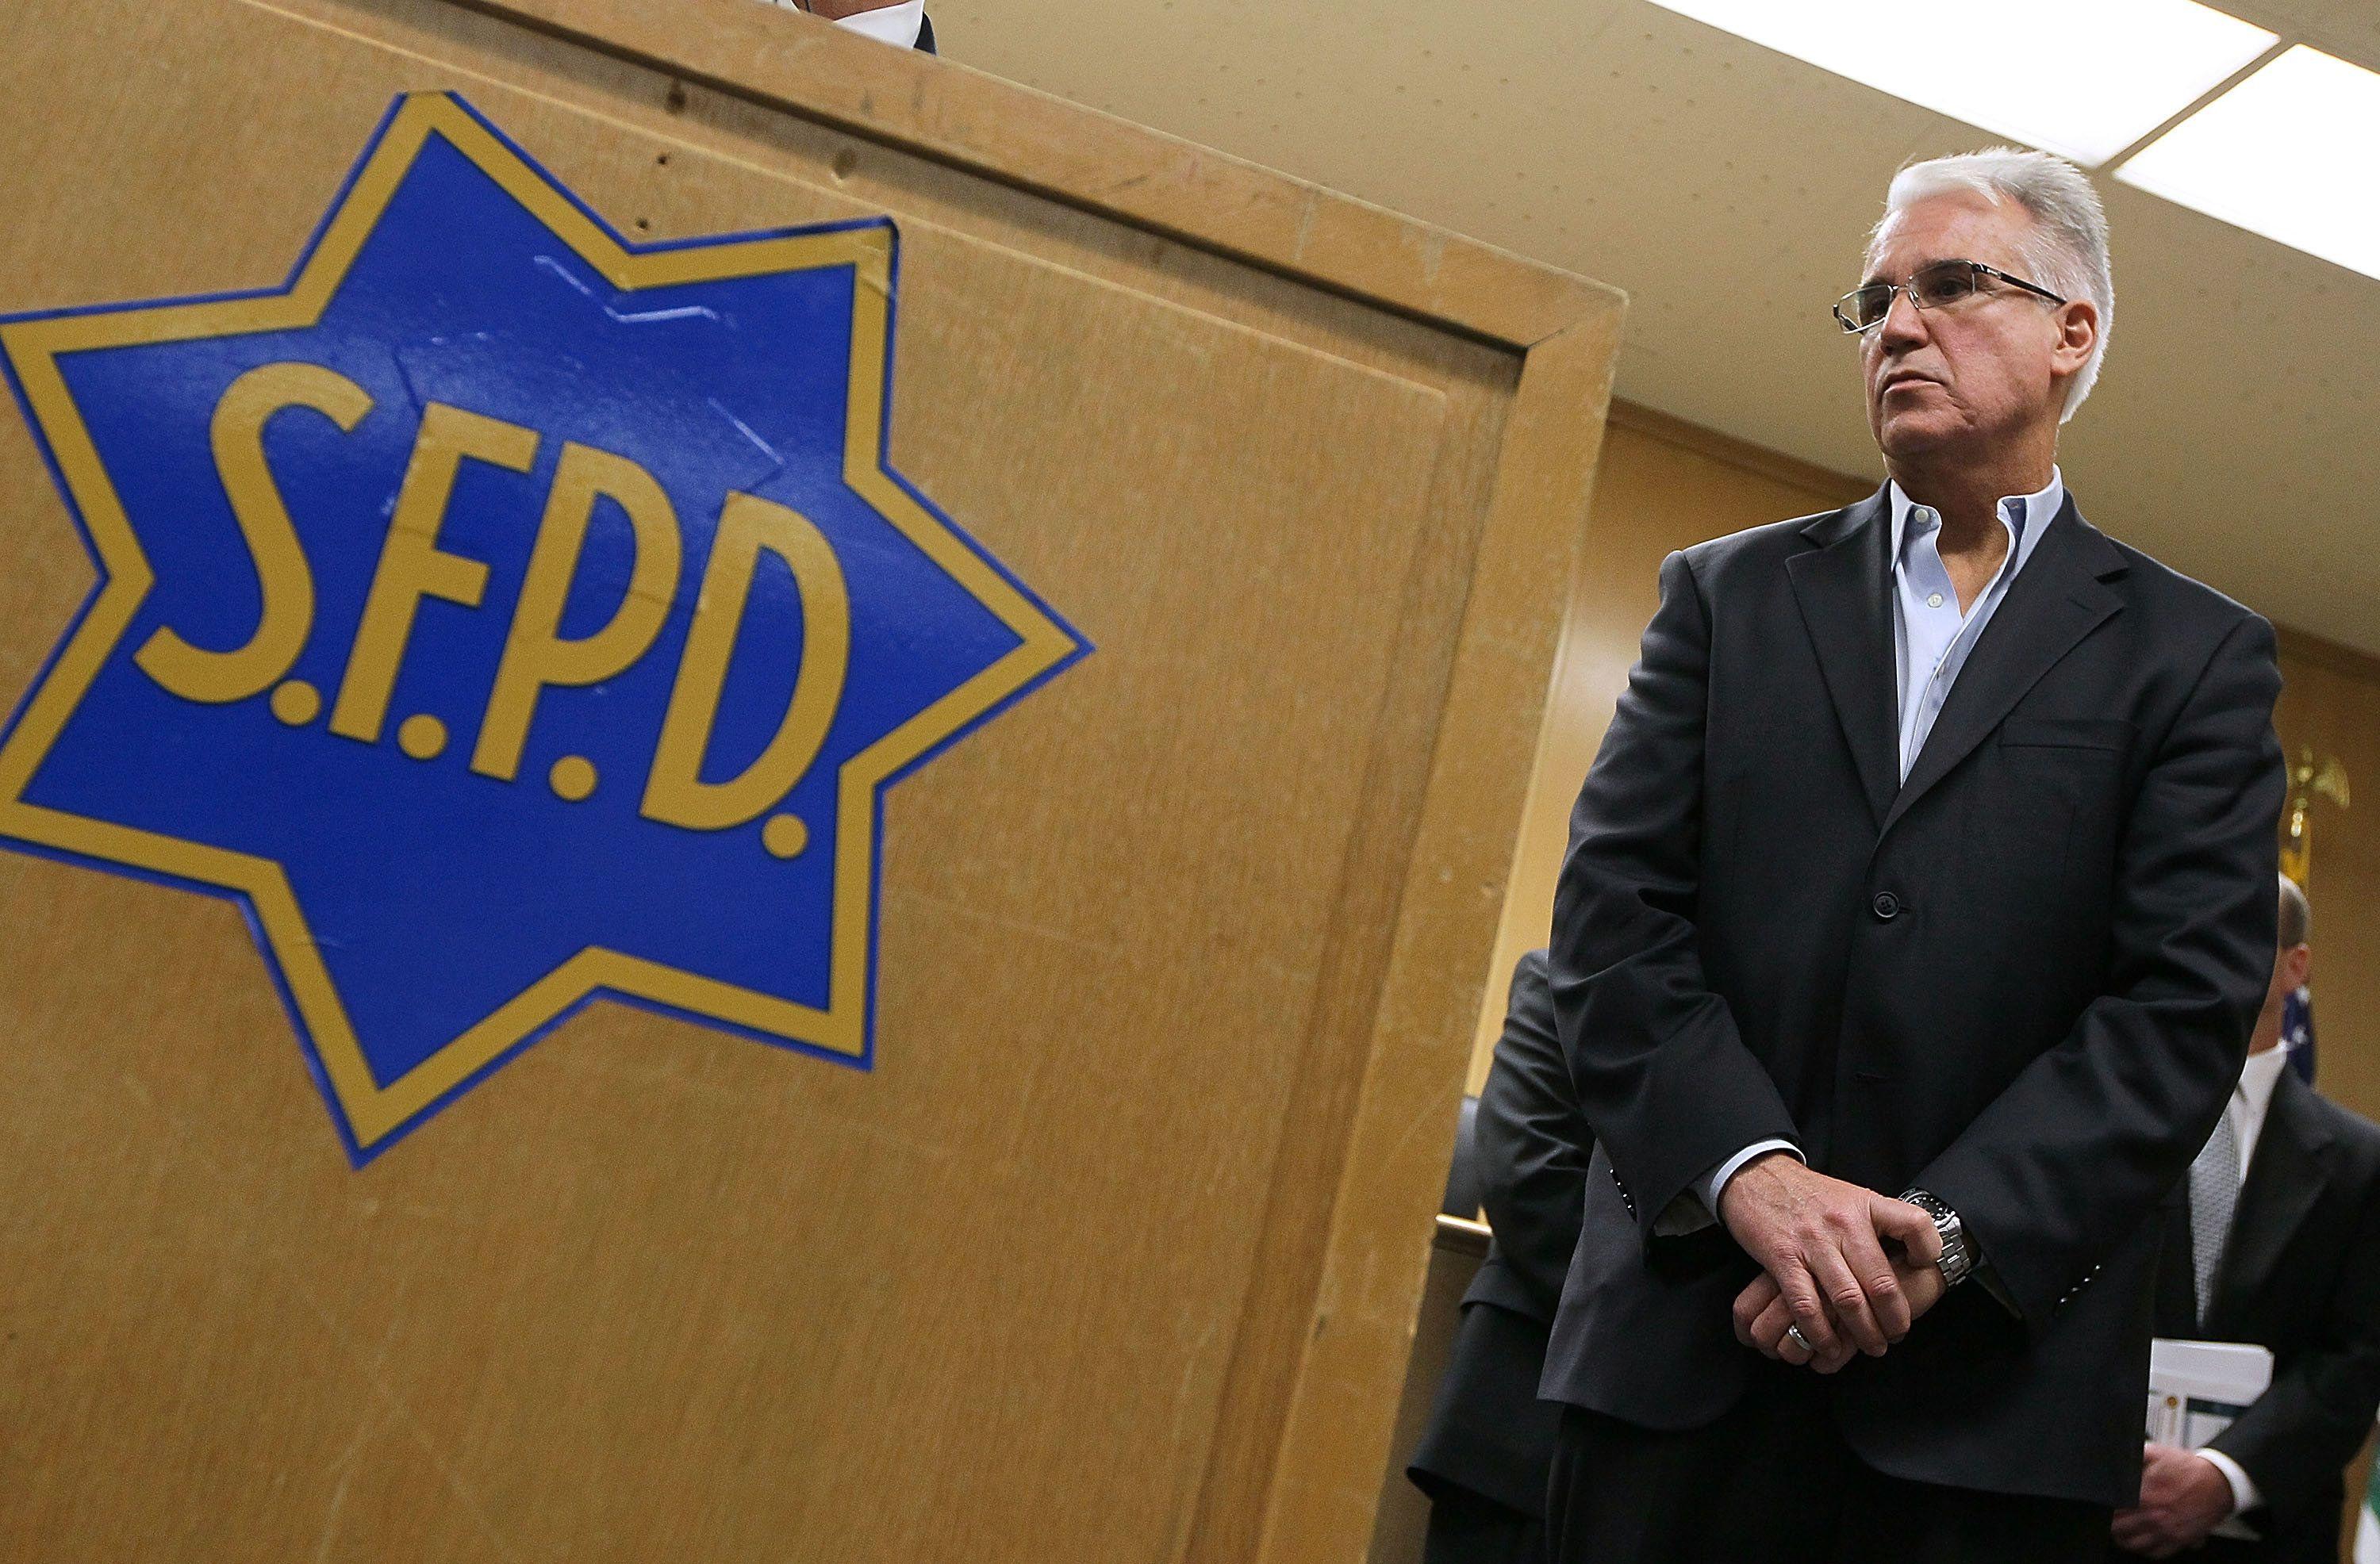 SAN FRANCISCO - MAY 05: San Francisco Police Chief George Gascon pauses during a news conference at the San Francisco Hall of Justice May 5, 2010 in San Francisco, California. Chief Gascon discussed the ongoing investigation and corrective action of the San Francisco police crime lab where a technician tampered with and stole drug samples which jeaoparded hundreds of drug cases and possible convictions. (Photo by Justin Sullivan/Getty Images)